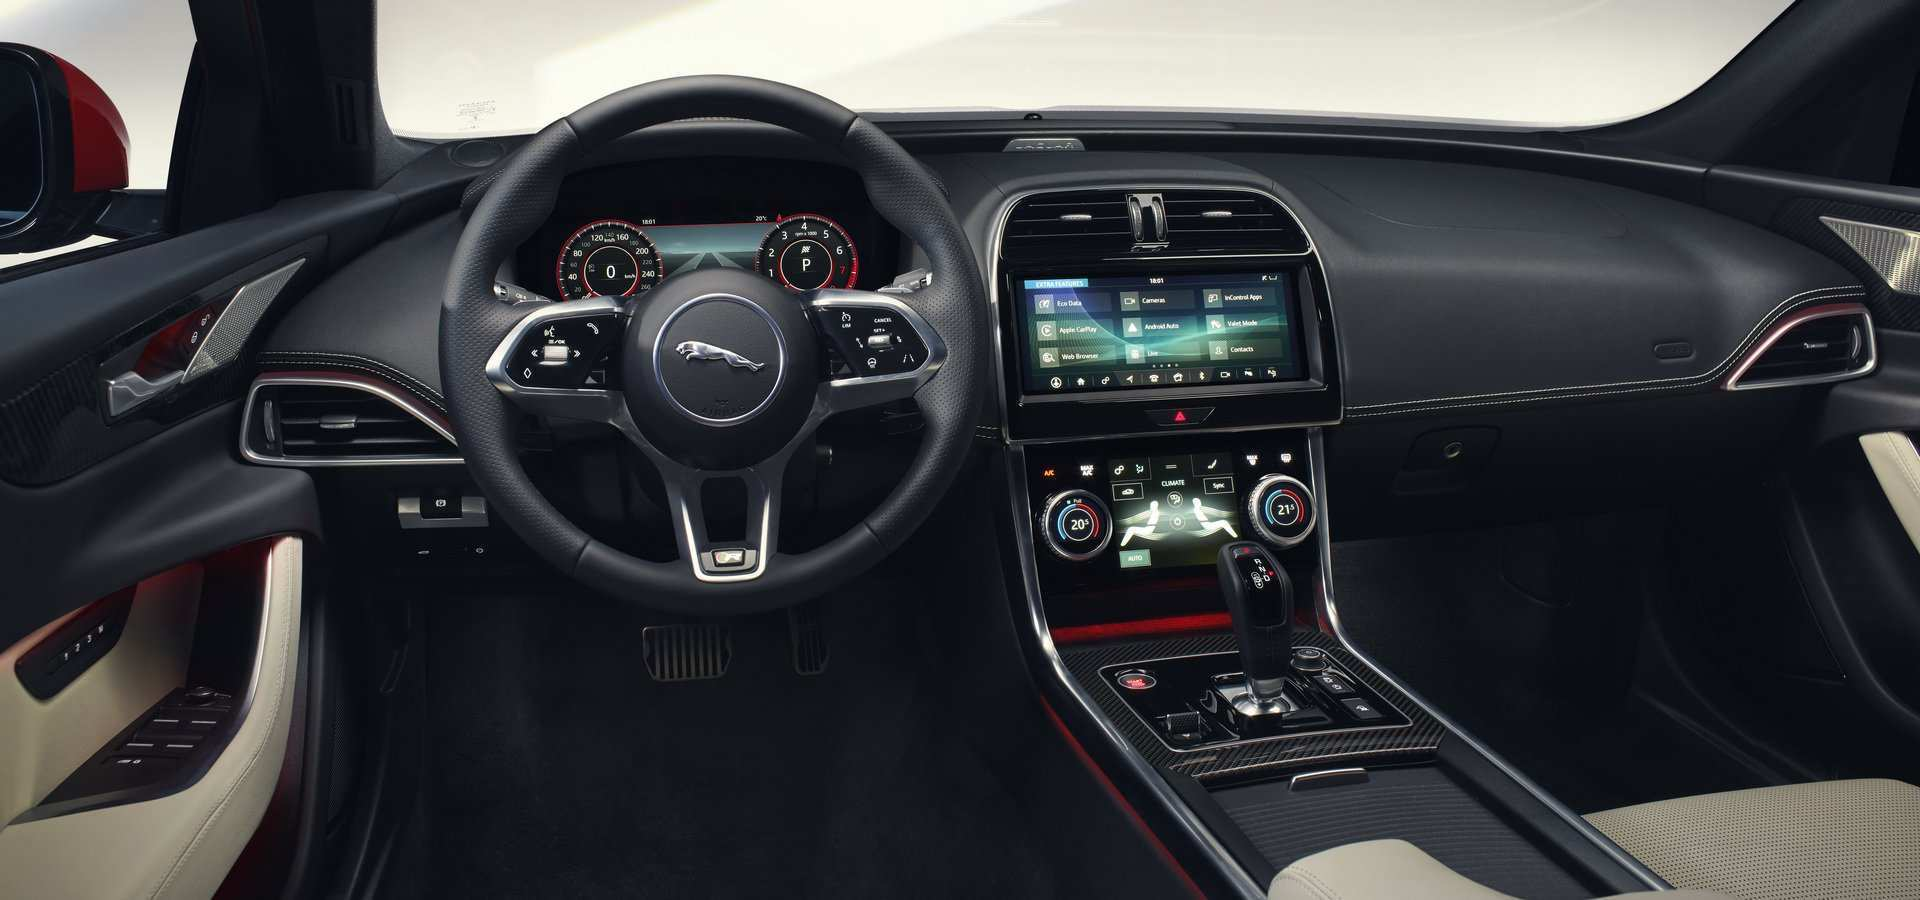 30 Best Jaguar F Pace 2020 Interior Review